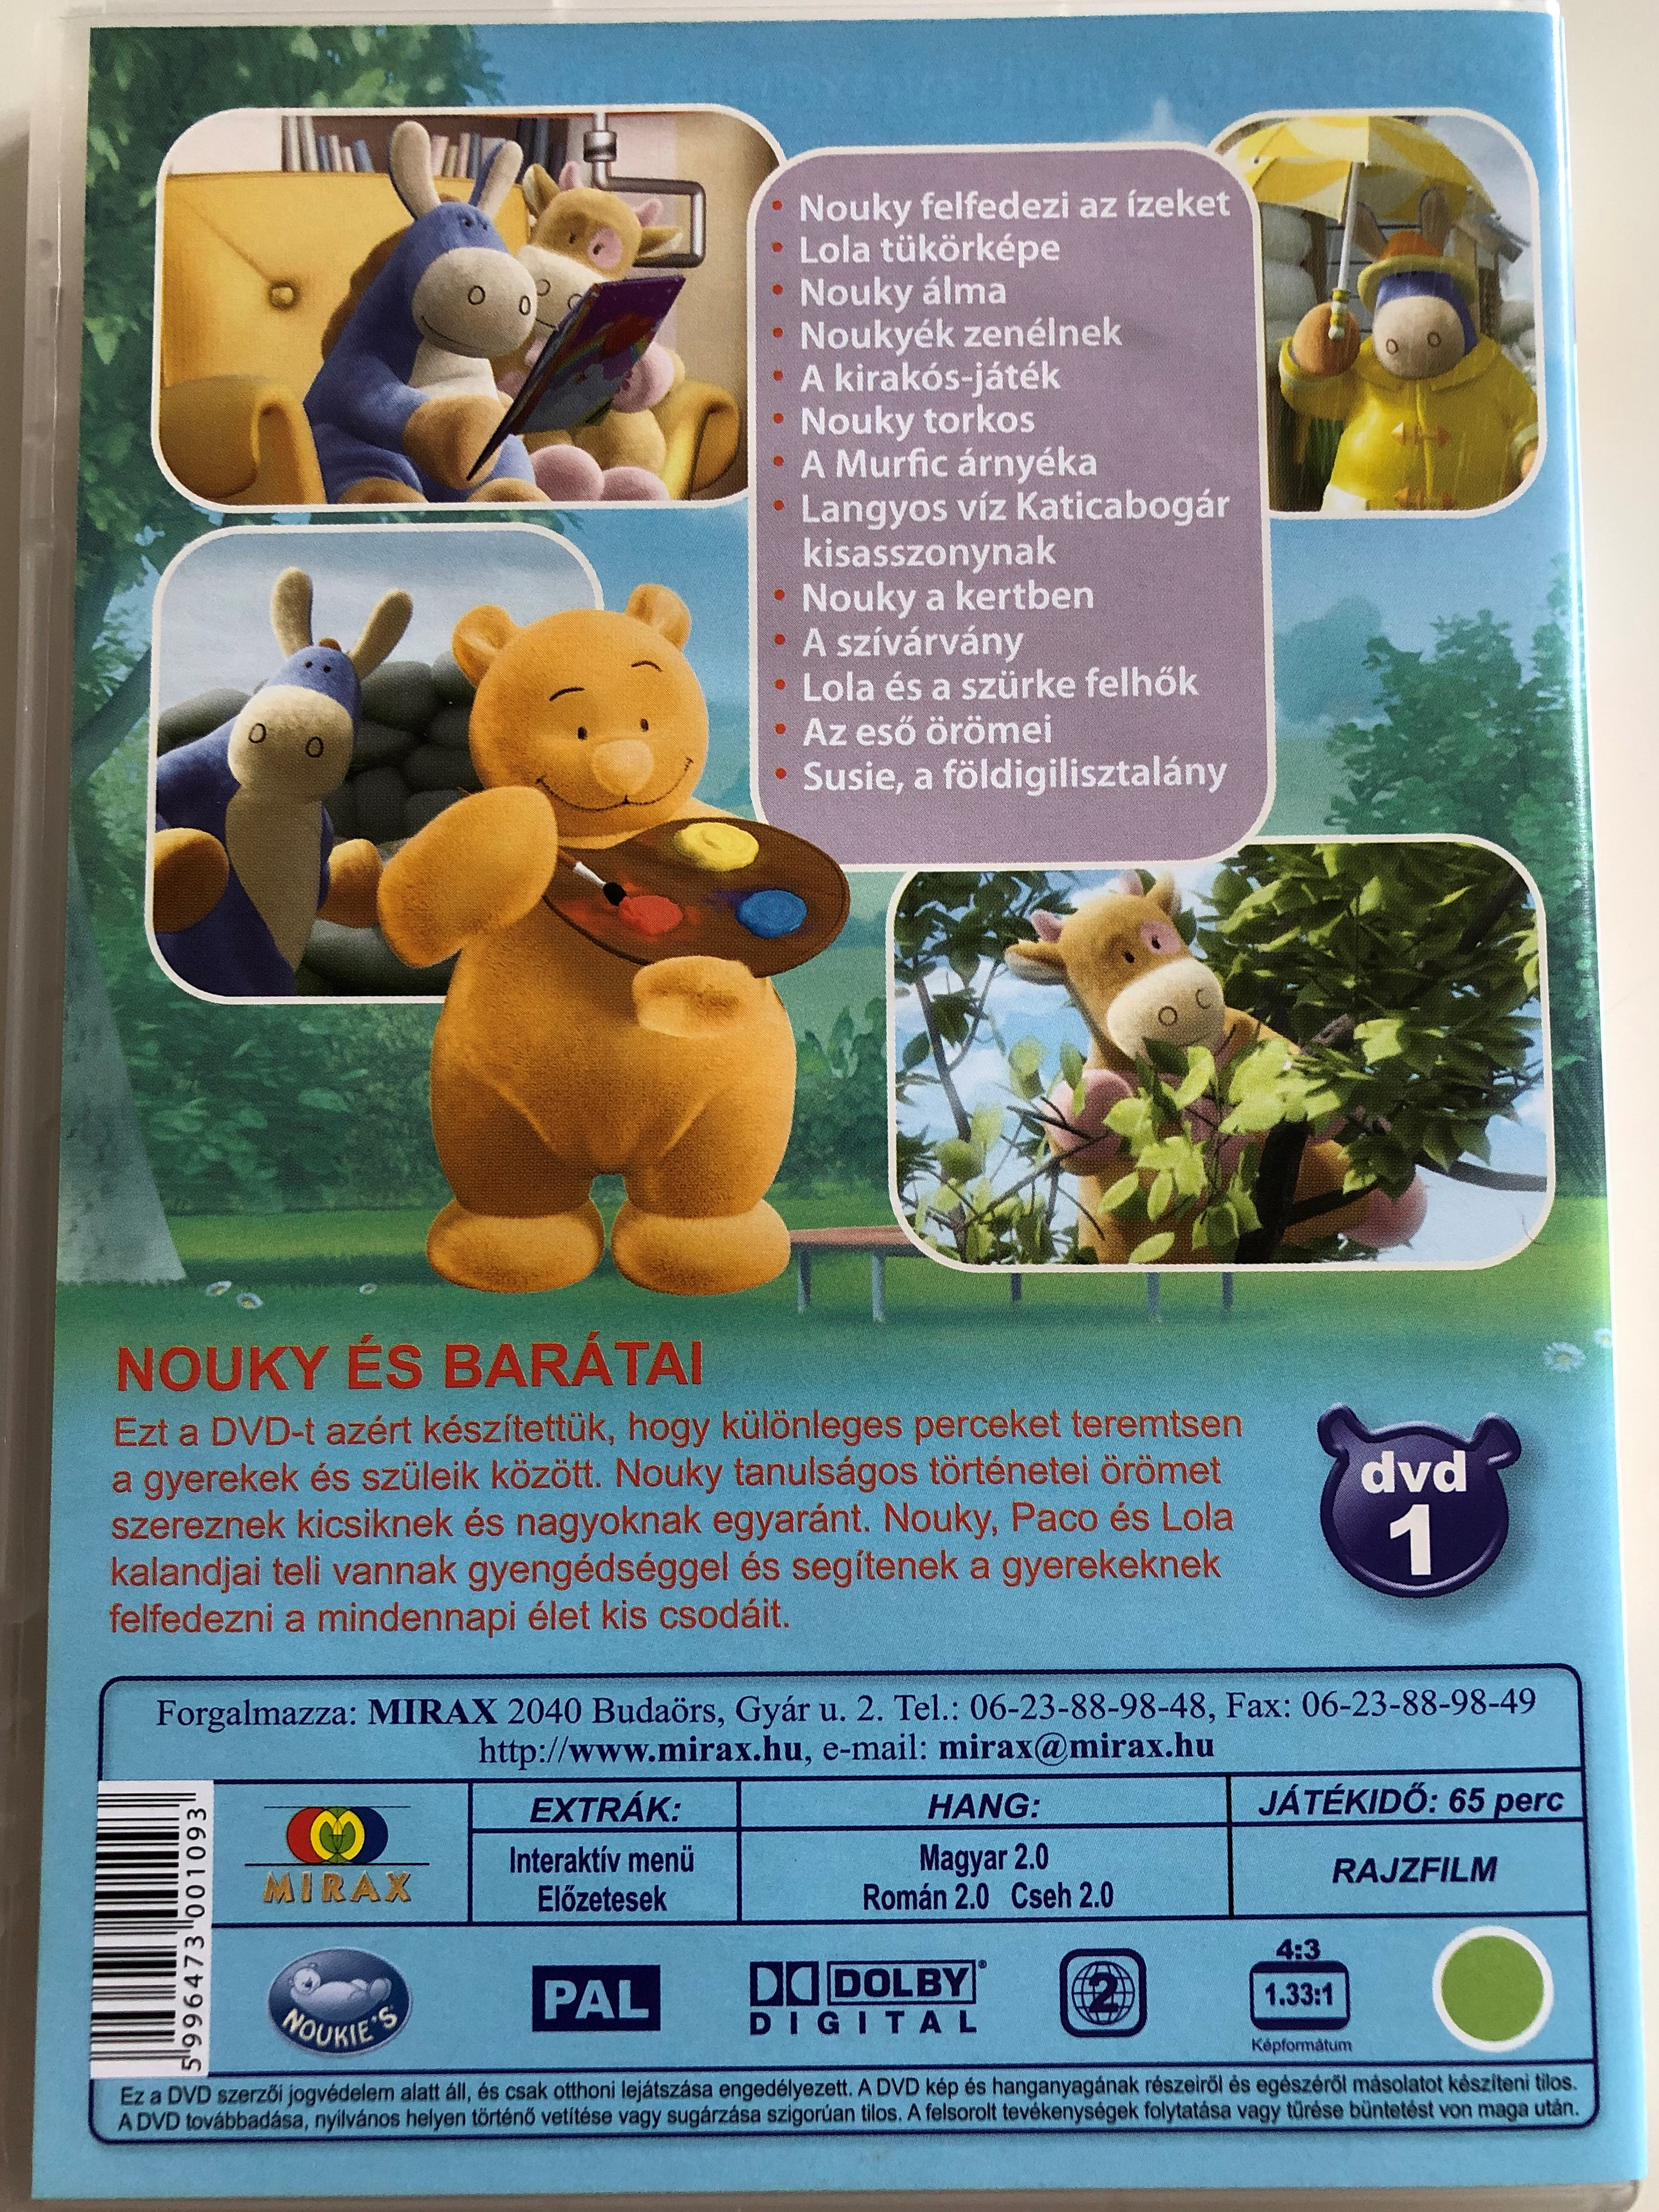 nouky-friends-dvd-2006-nouky-s-bar-tai-dvd-1-directed-by-st-phan-roelants-eric-jacquot-armelle-glorennec-belgian-cartoon-series-13-episodes-2-.jpg